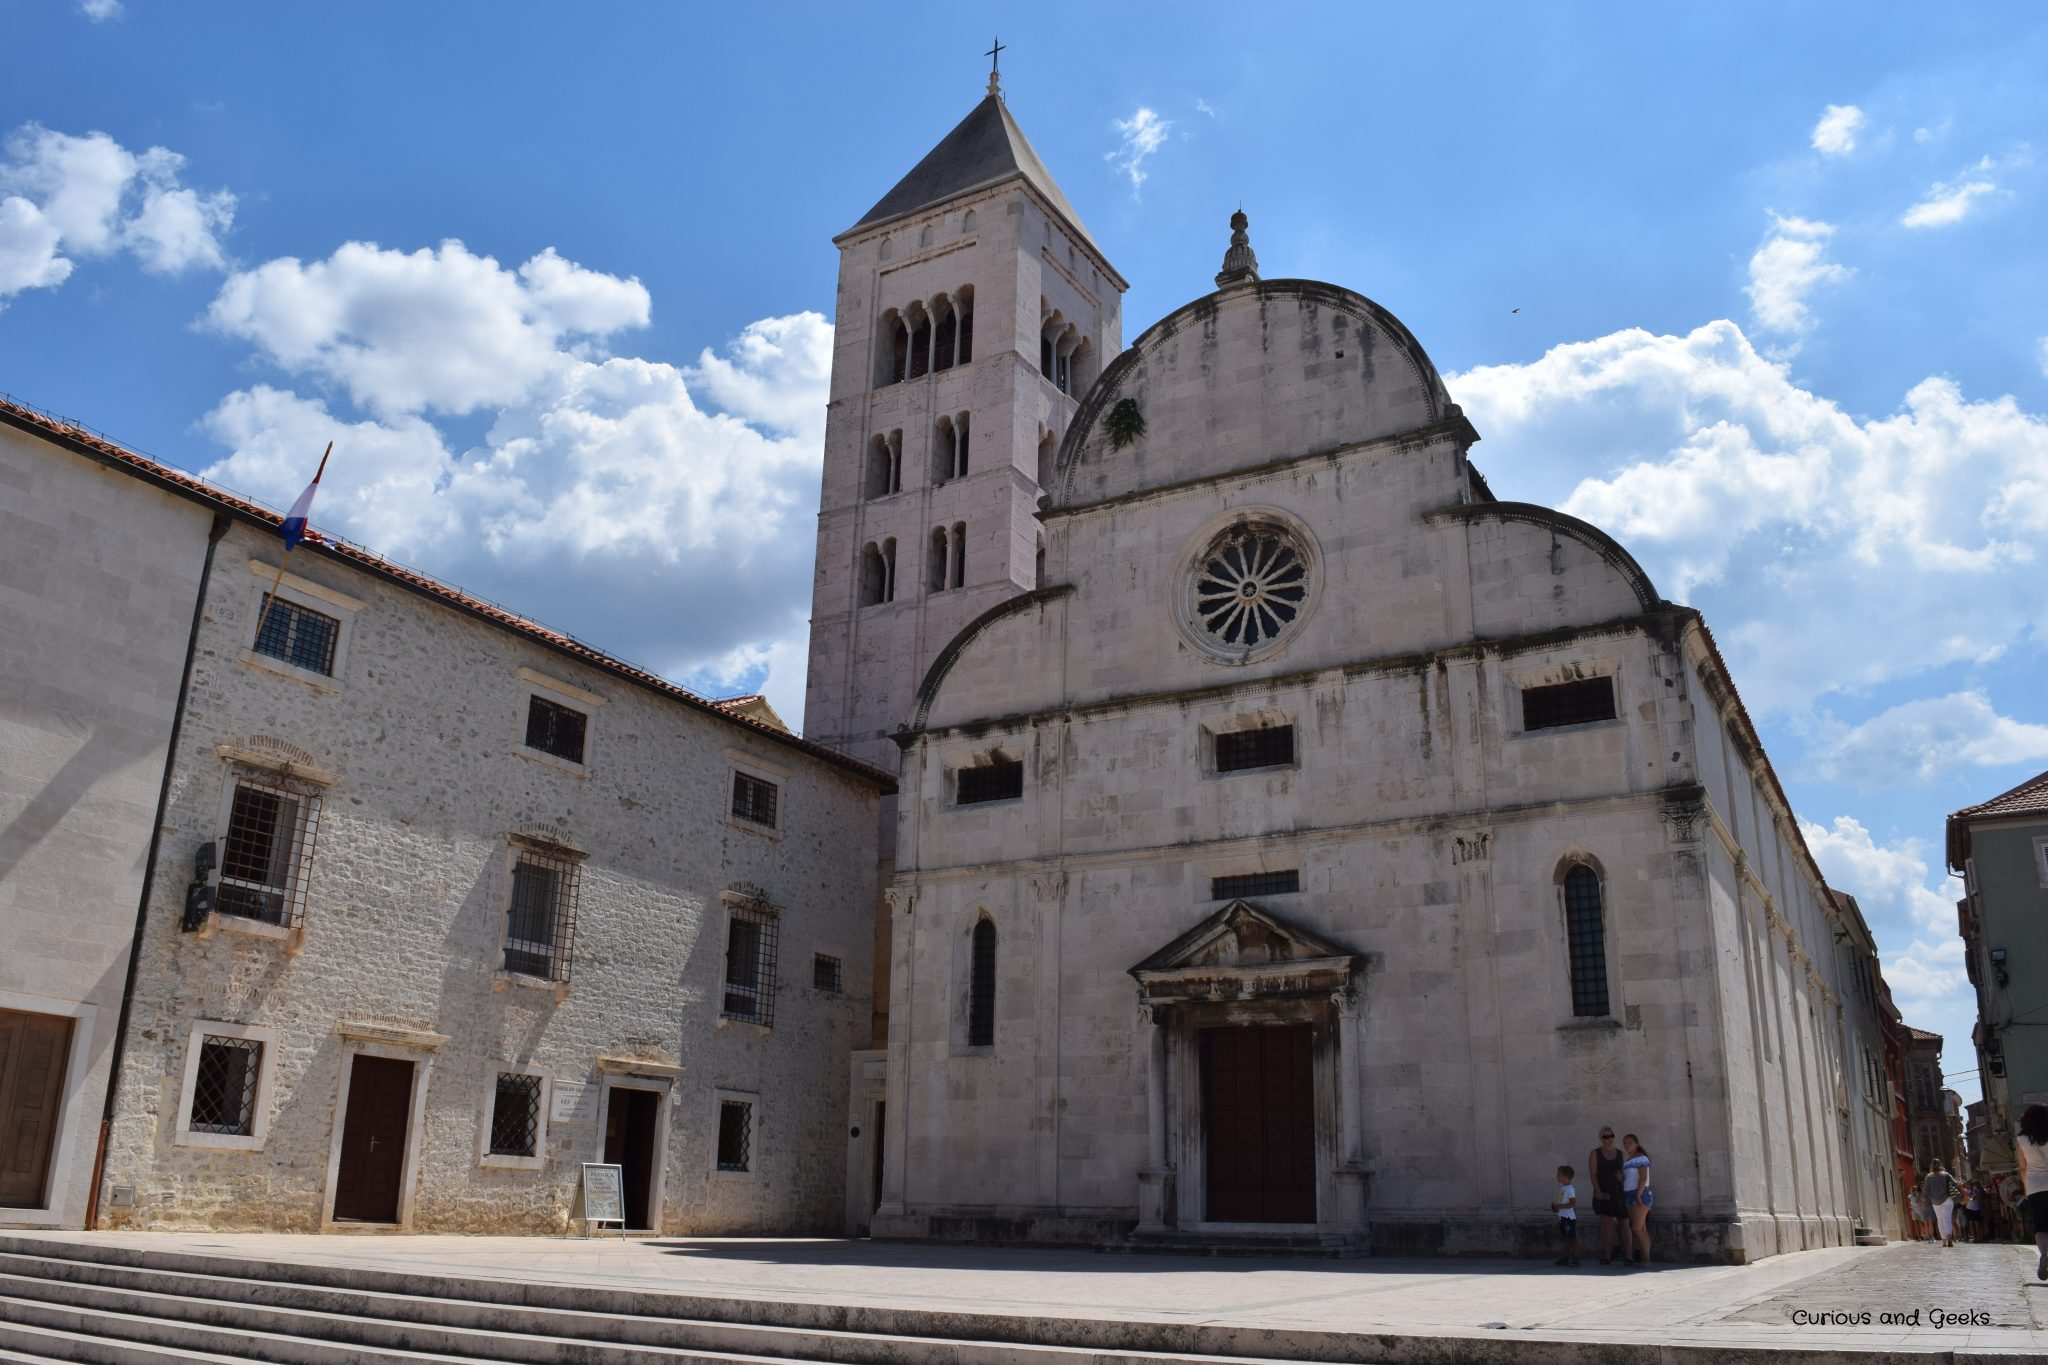 st mary's church and covent - Road trip in Croatia with kids